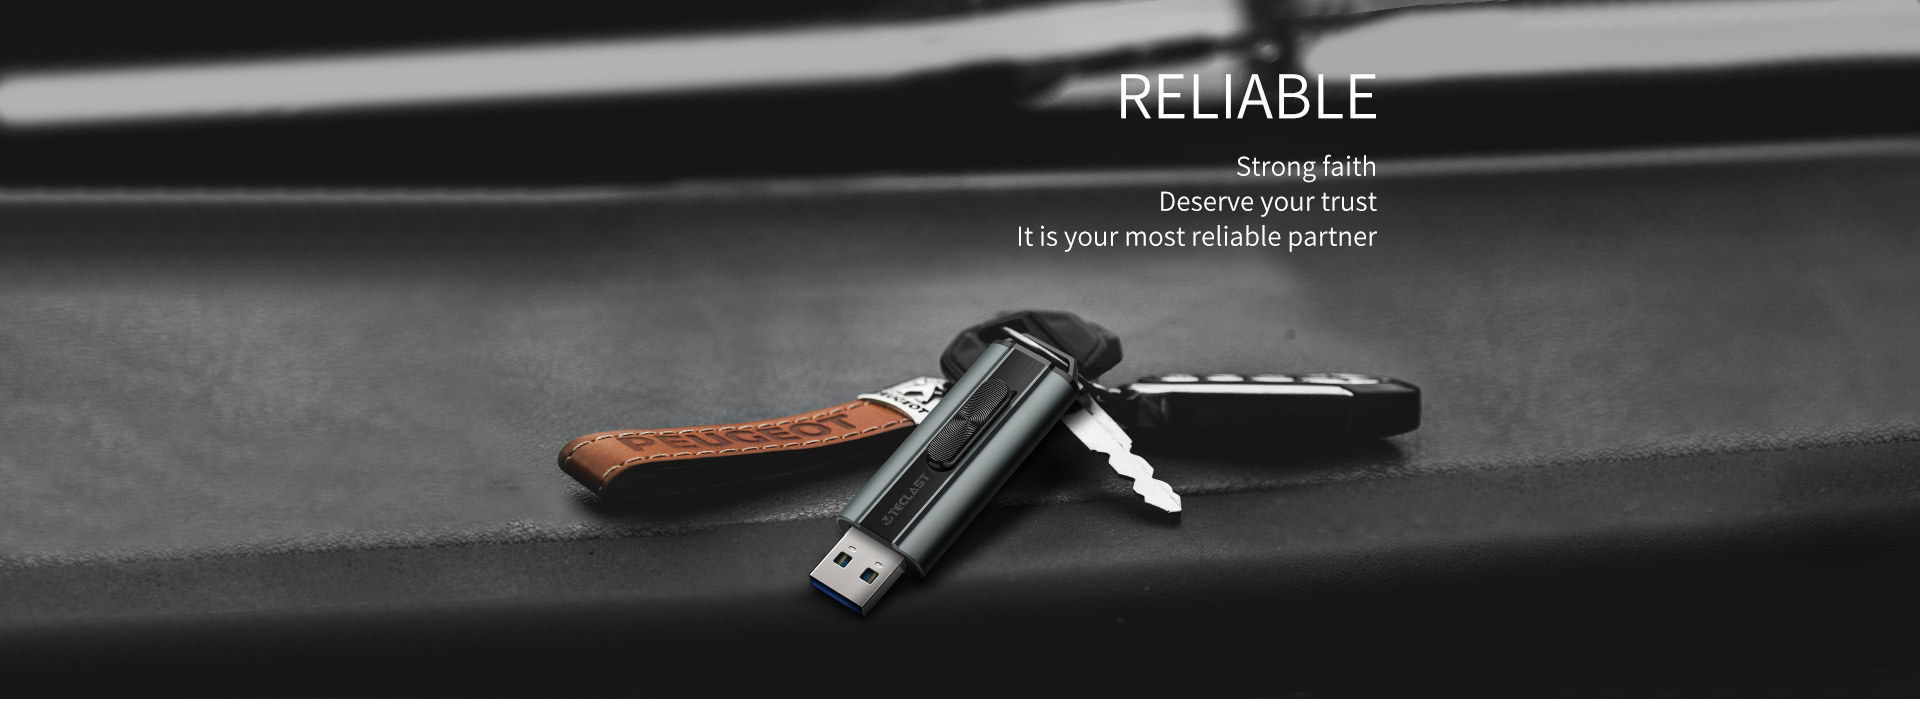 TECLAST 16/32/64/128GB USB 3.0 Pendrive USB Flash Drive USB Disk Waterproof